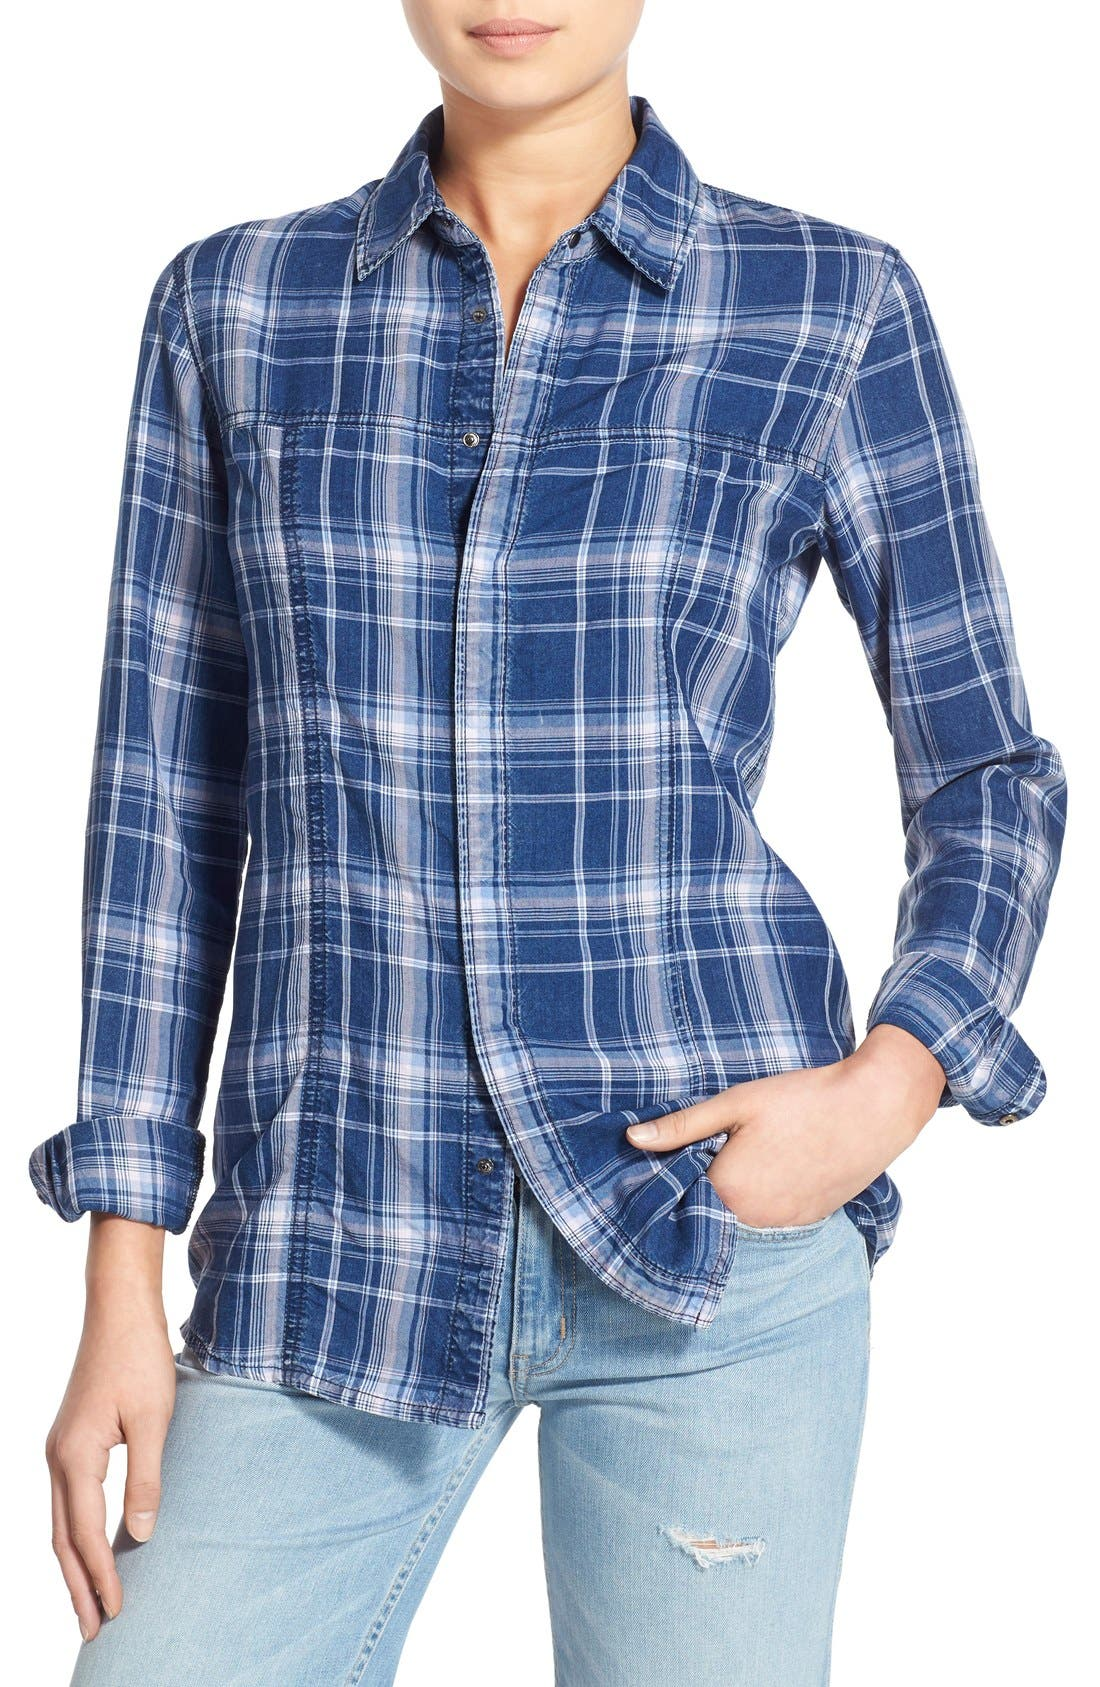 Alternate Image 1 Selected - Hudson Jeans 'Britt' Plaid Shirt